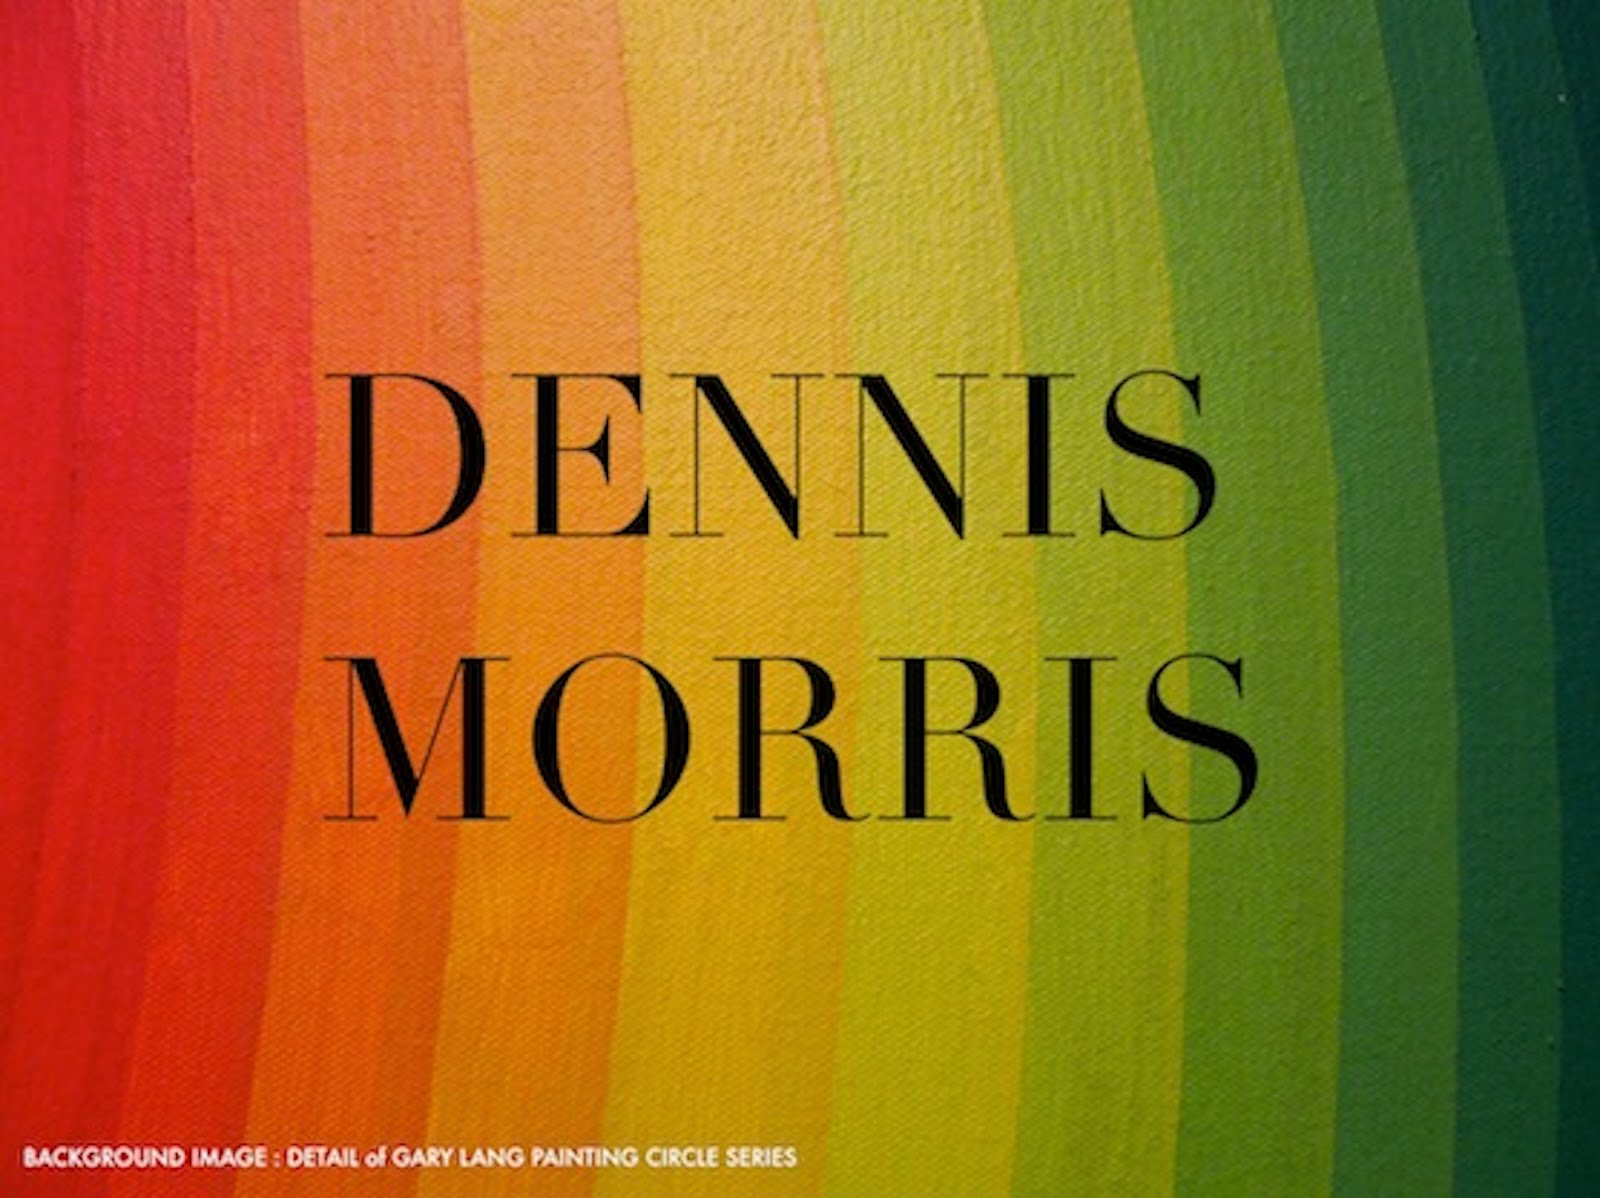 DENNIS MORRIS INTERVIEW